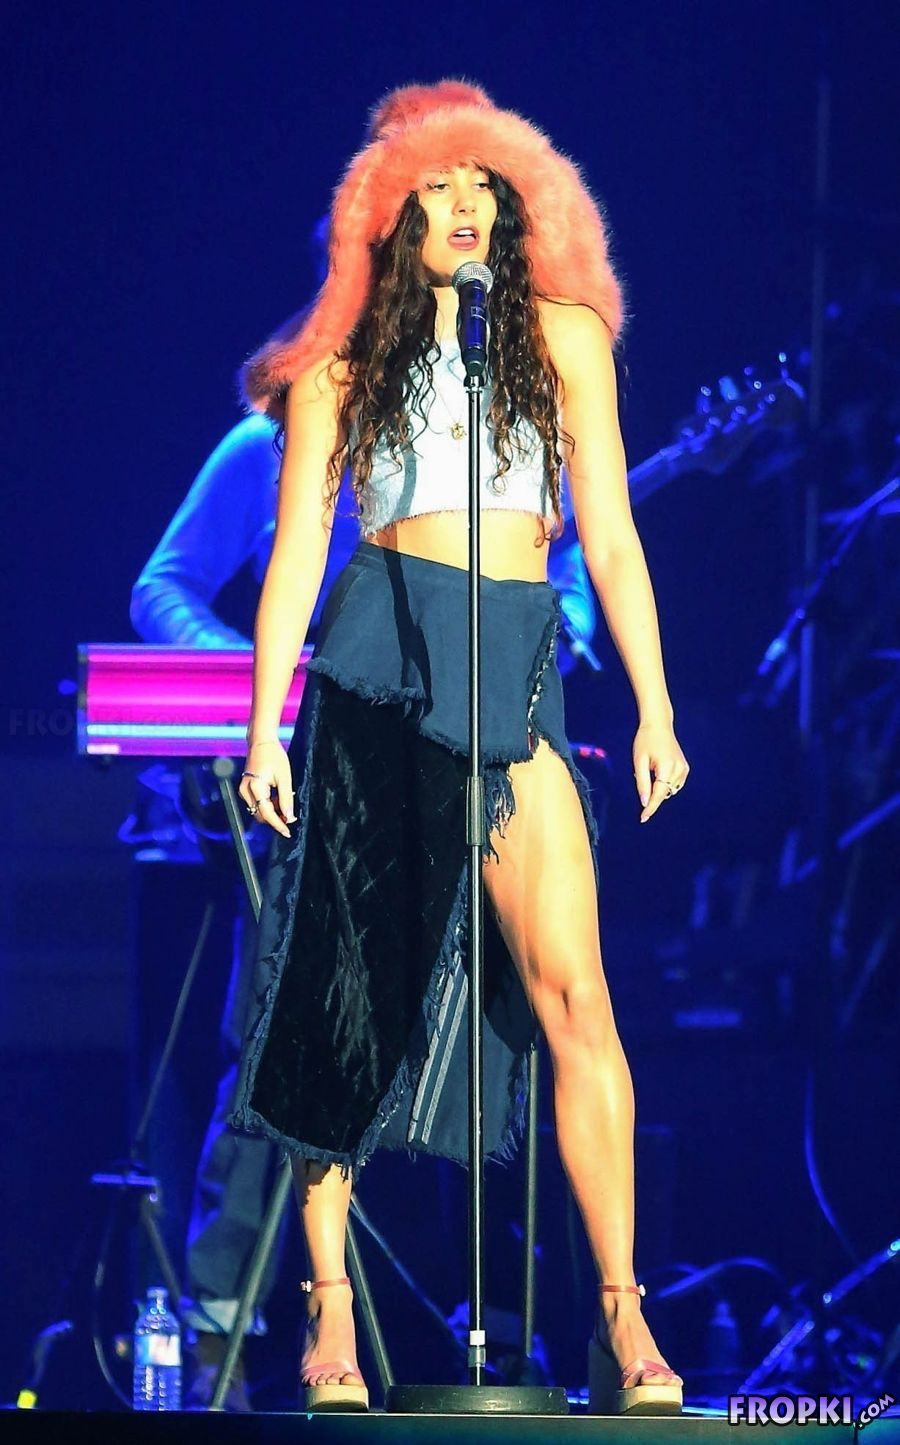 Eliza Doolittle at Echo Arena in Liverpool